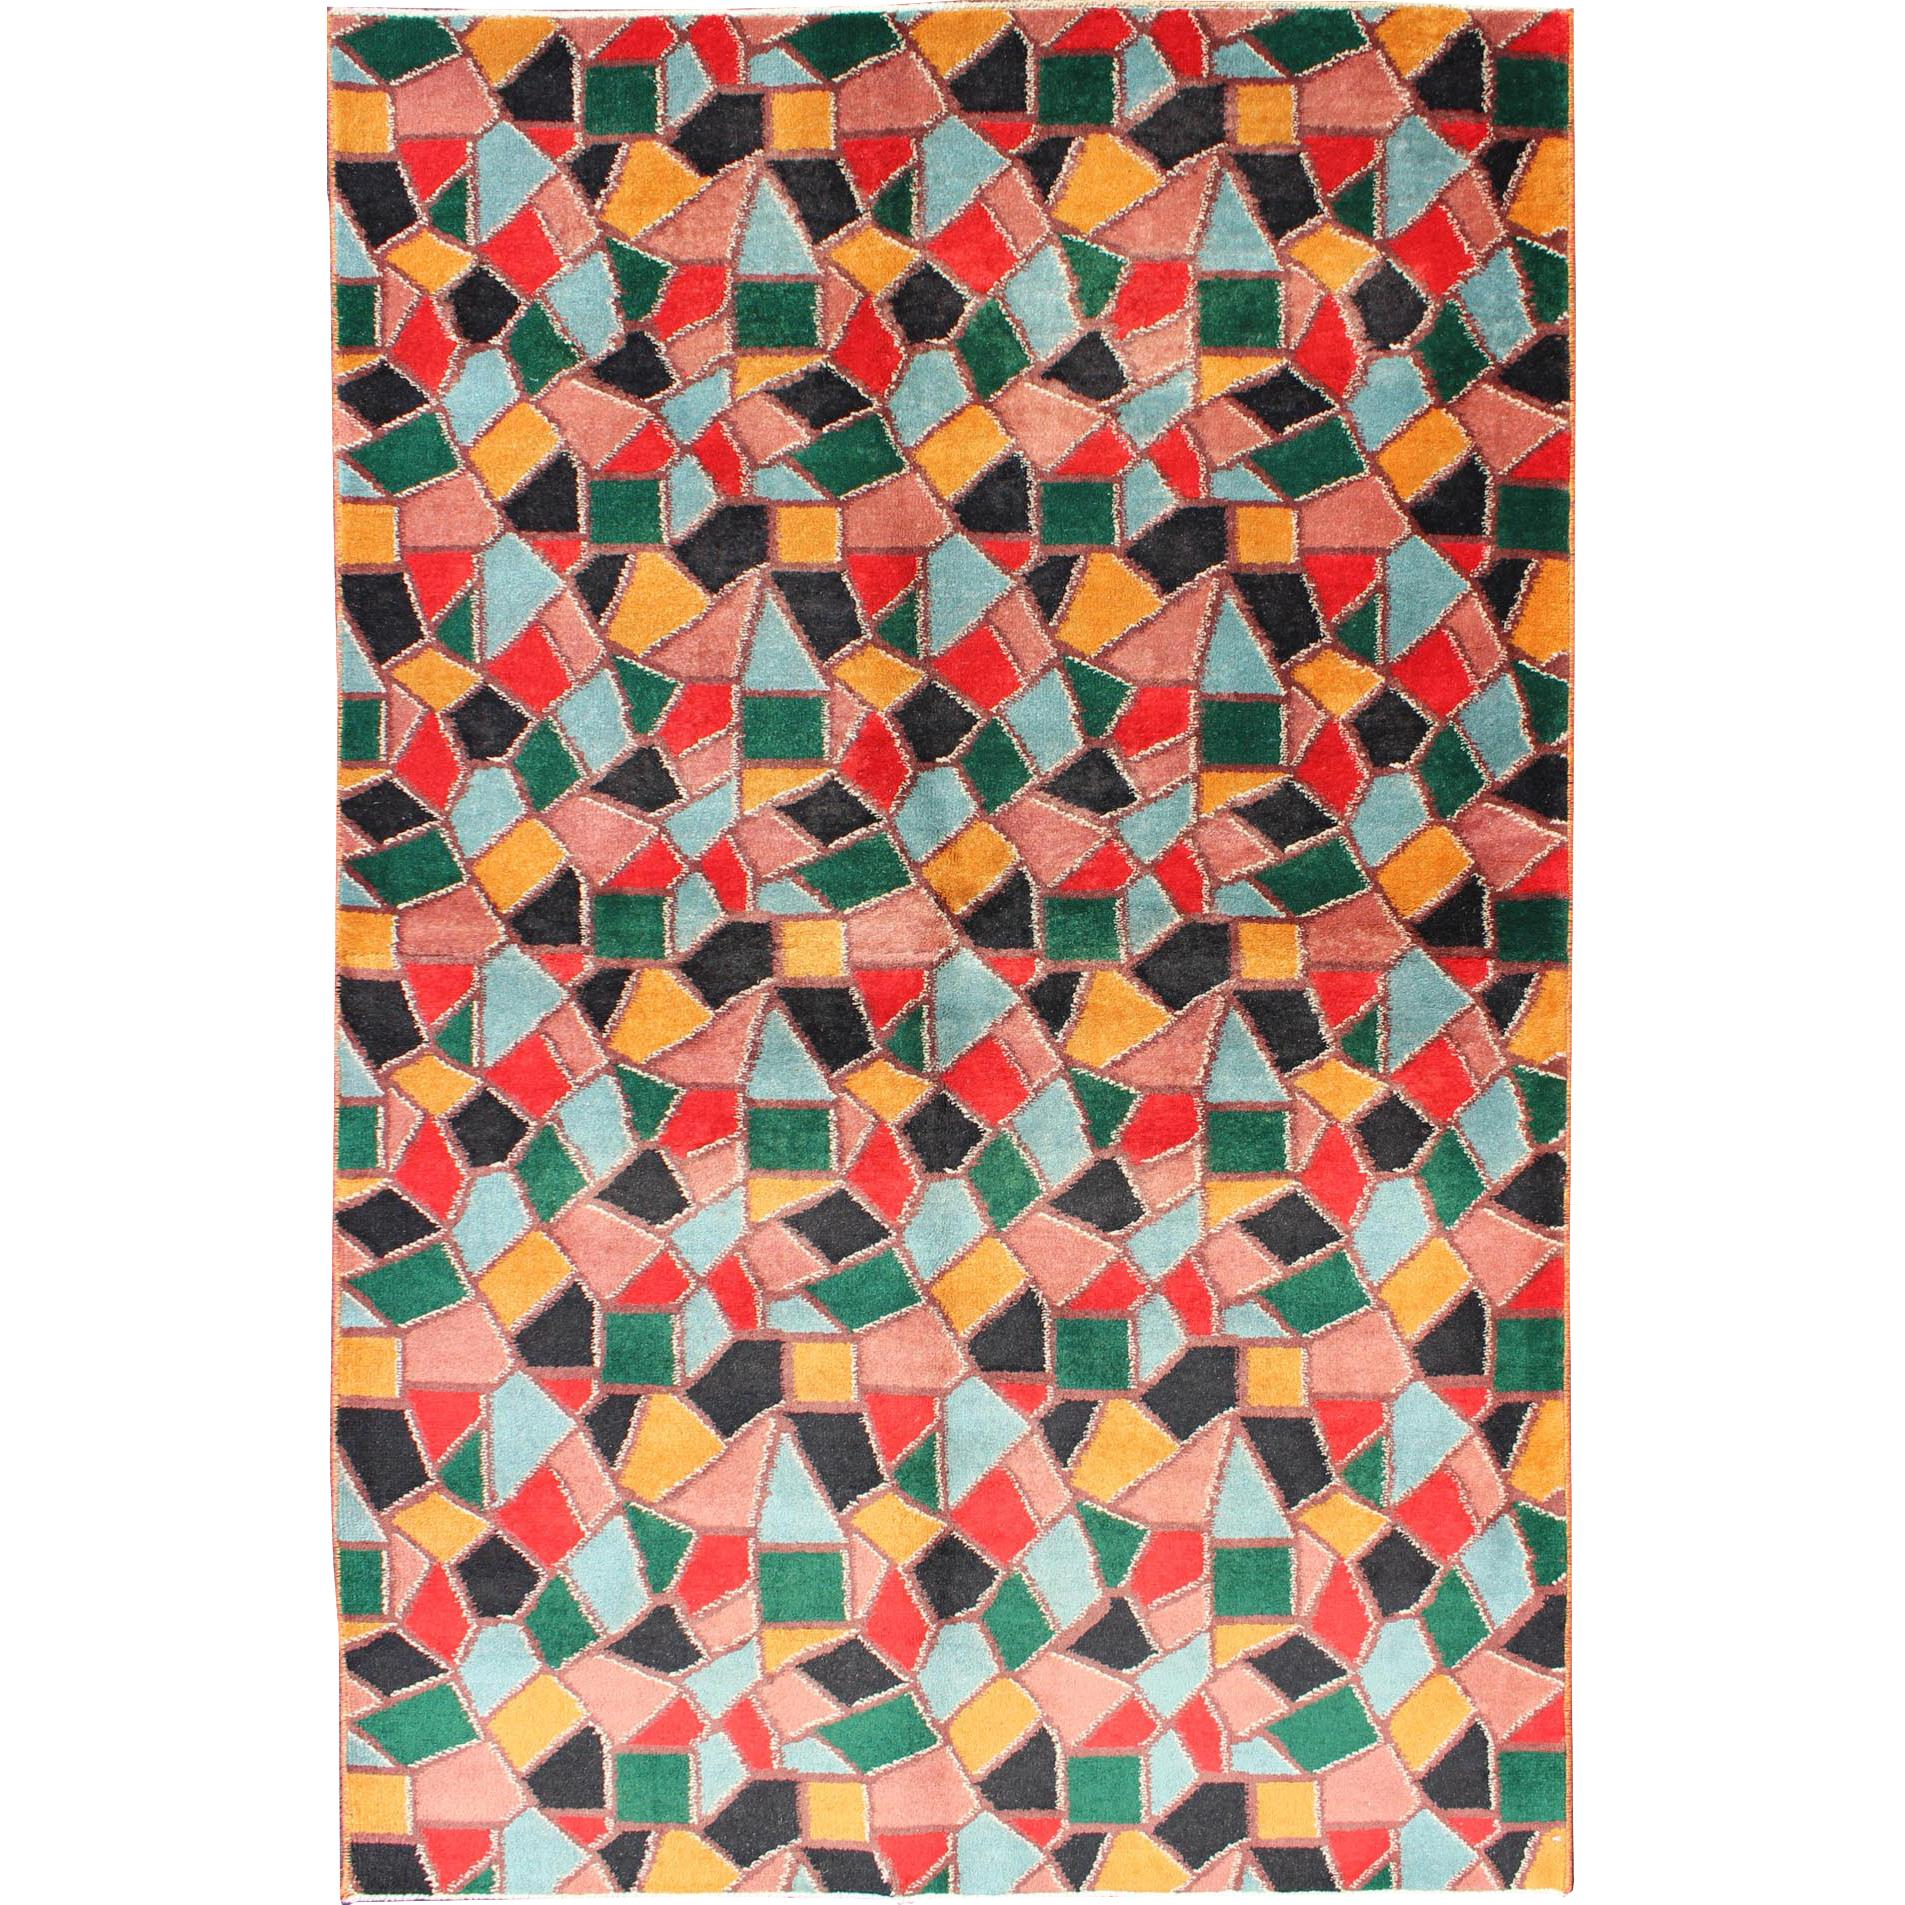 Mid-Century Modern Rug with Mosaic Design in Red, Yellow, Pink, Blue and Green